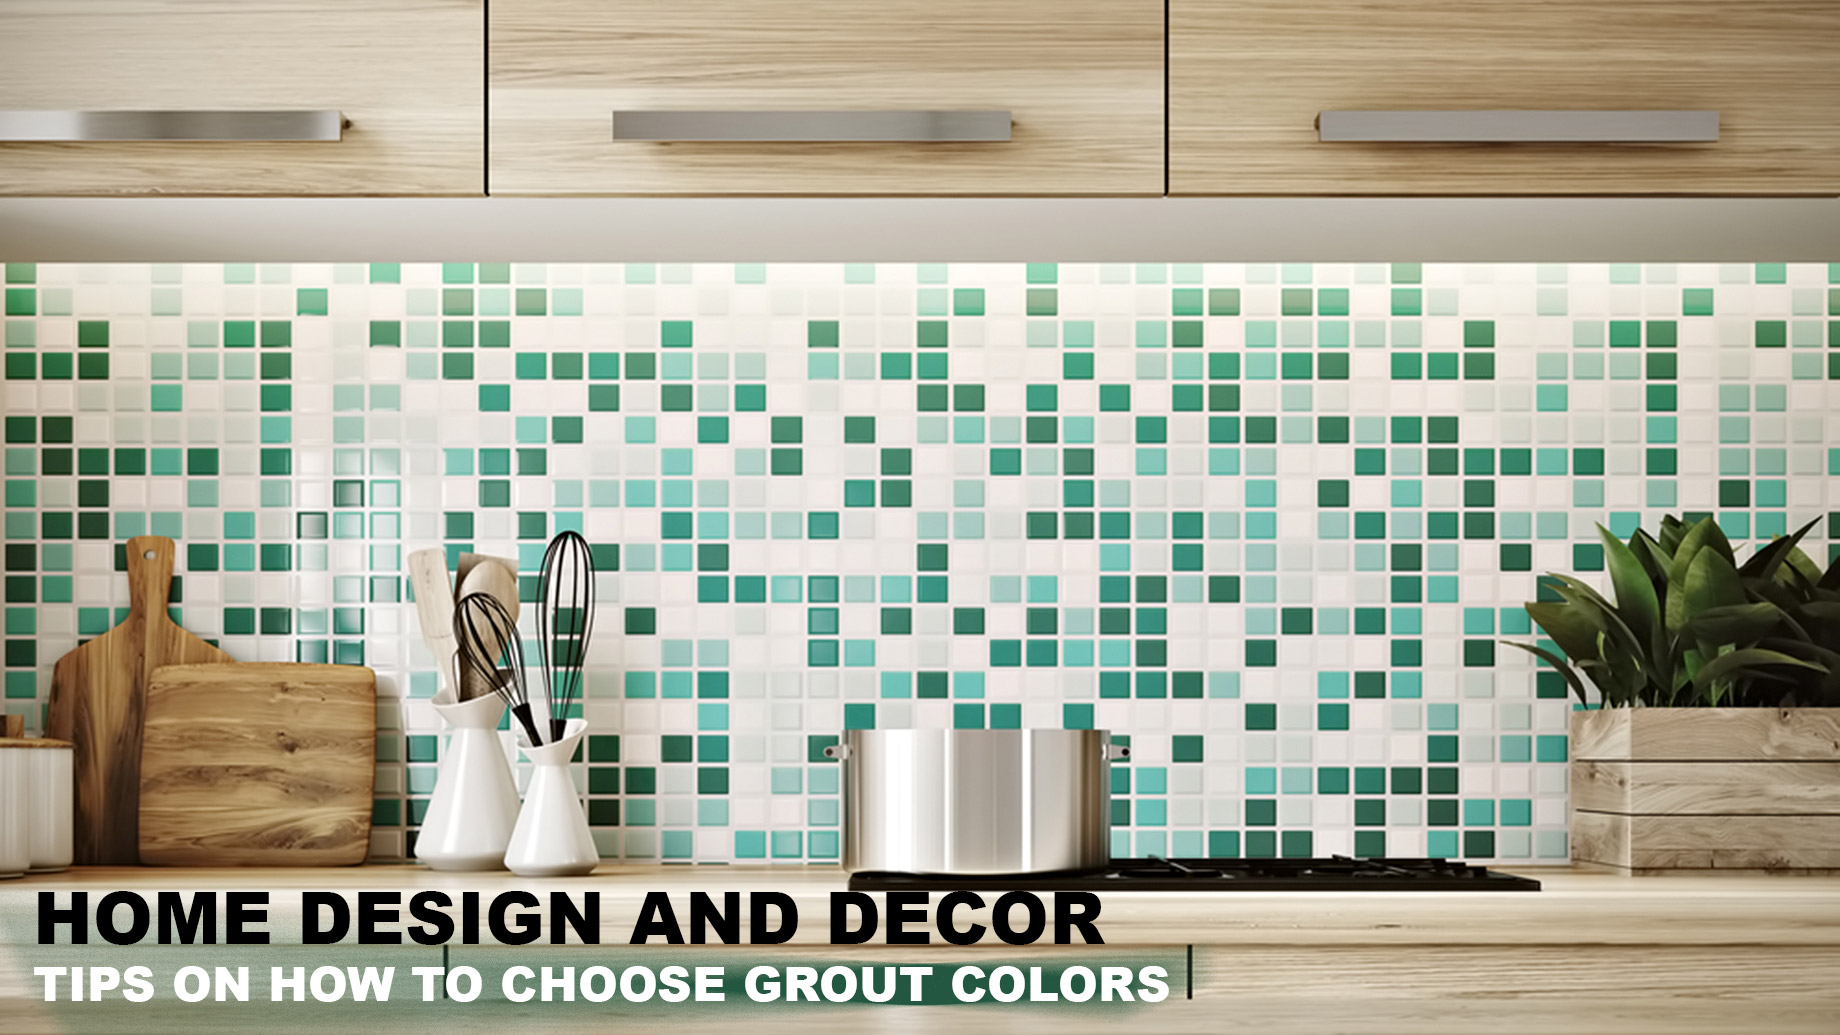 Home Design and Decor - Tips On How To Choose Grout Colors